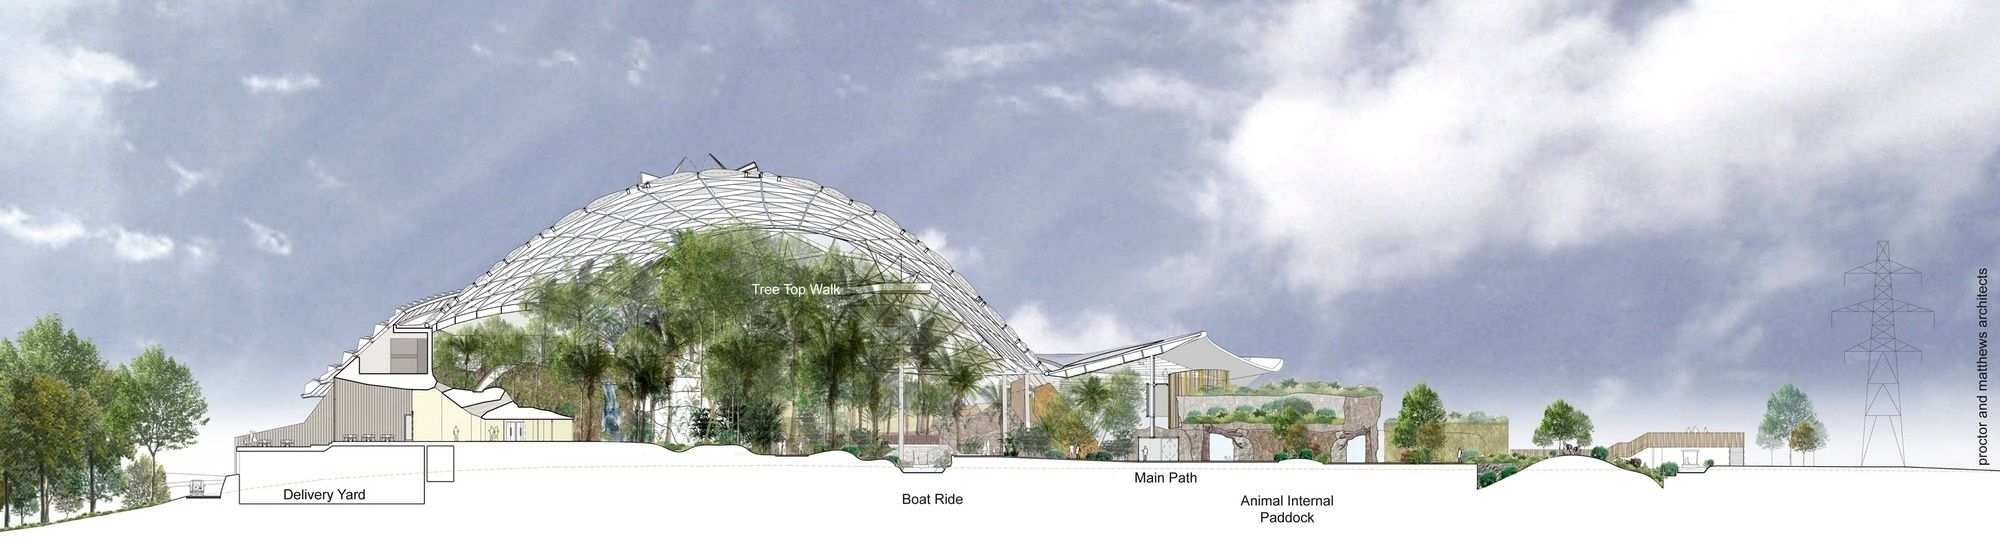 A 225 Million Redevelopment Of Chester Zoo Featuring A Biodome - Heart-of-africa-biodome-at-chester-zoo